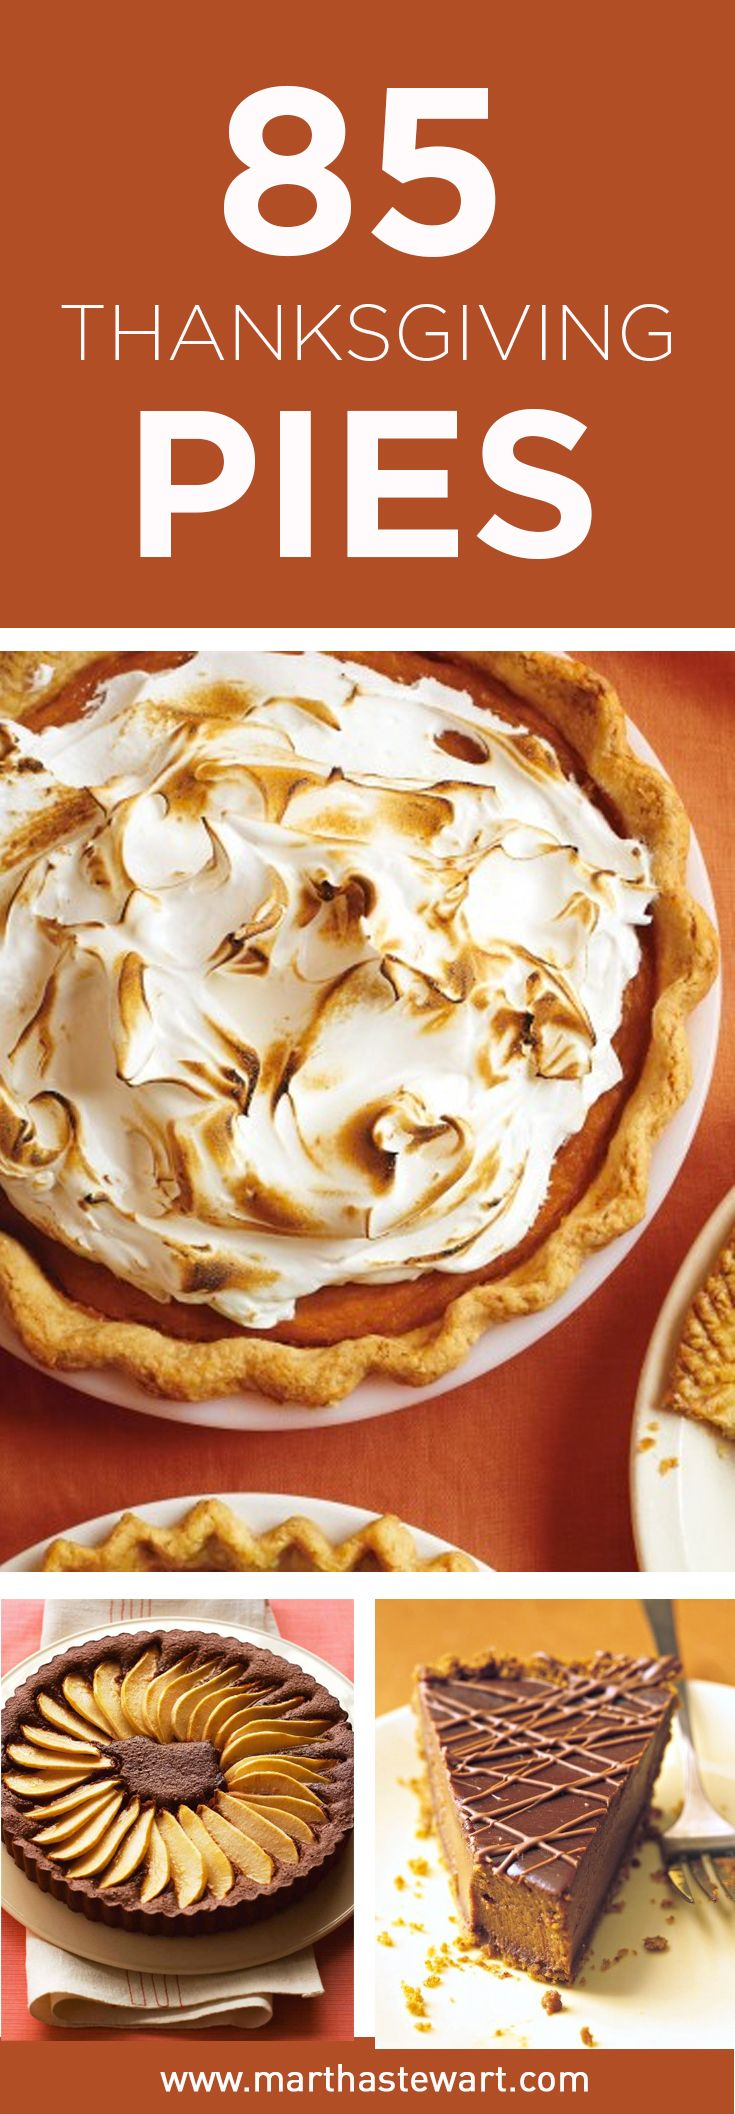 At Thanksgiving time, dessert is just as important as the main meal. Find all the familiar sweet flavors of Thanksgiving, plus some new variations, in our collection of mouthwatering pies and tarts.